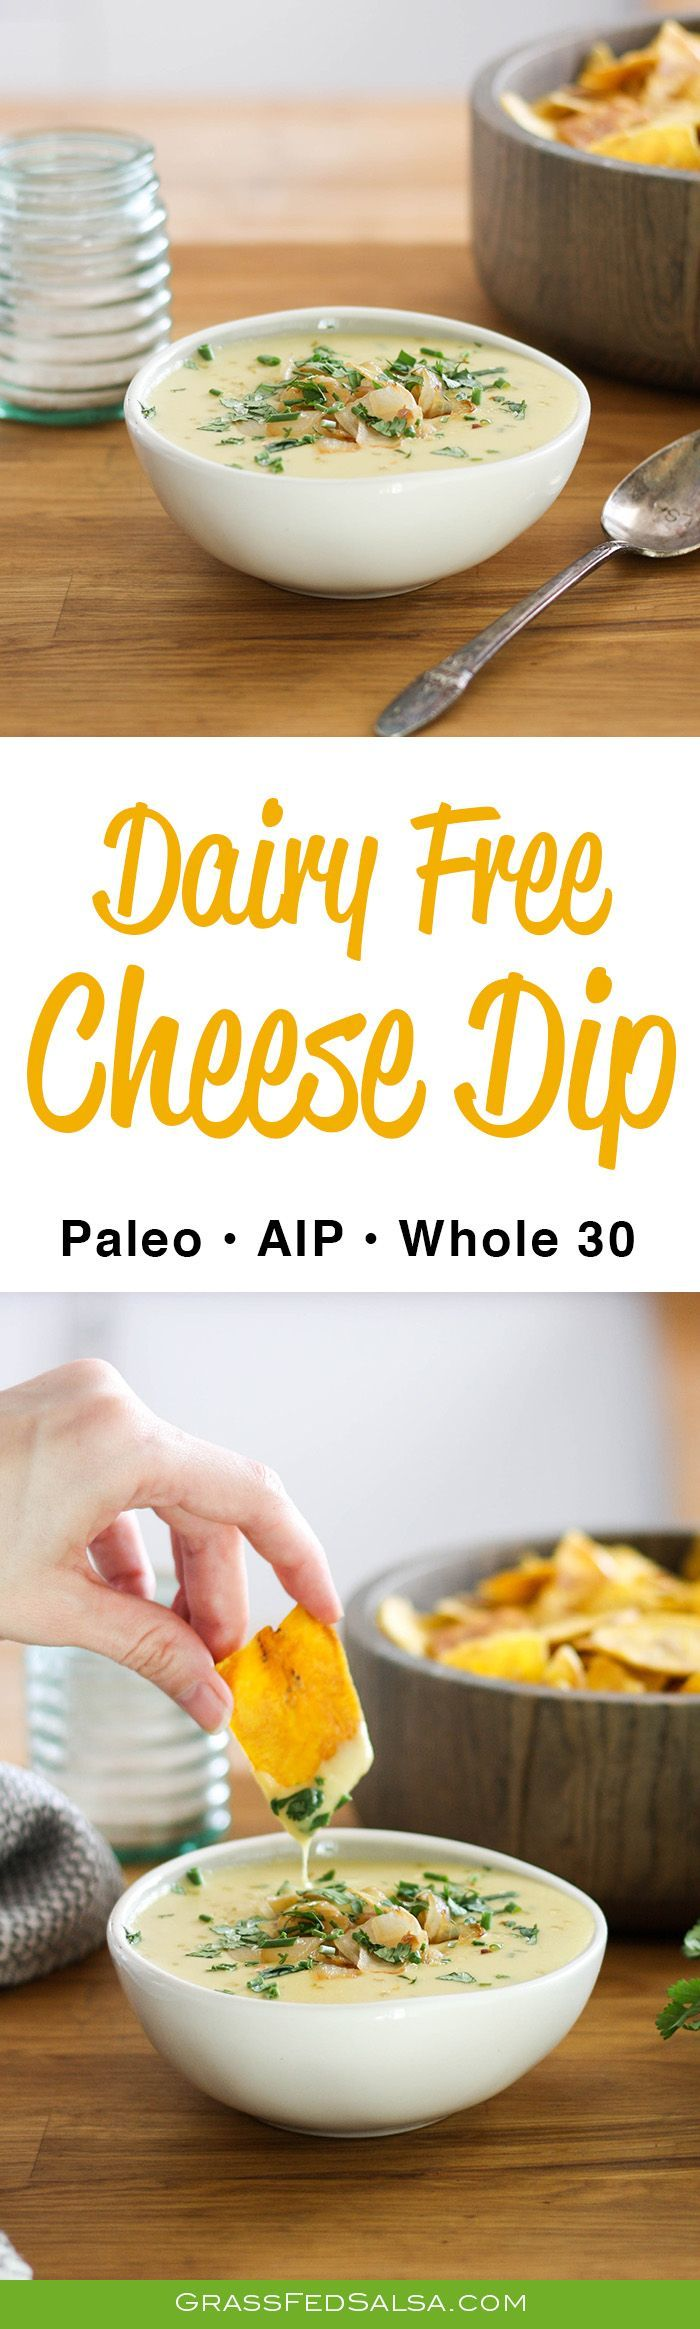 Skip To RecipeThis Dairy Free Cheese Dip is the perfect party food whether you're following Whole 30, AIP, or Paleo. Personally, I love topping this Cheese Dip with sauteed onions, cilantro, chives, and bacon, and using tostones (I explain how to make plantain tostones in this recipe!) to dip. I'd love to try it with …